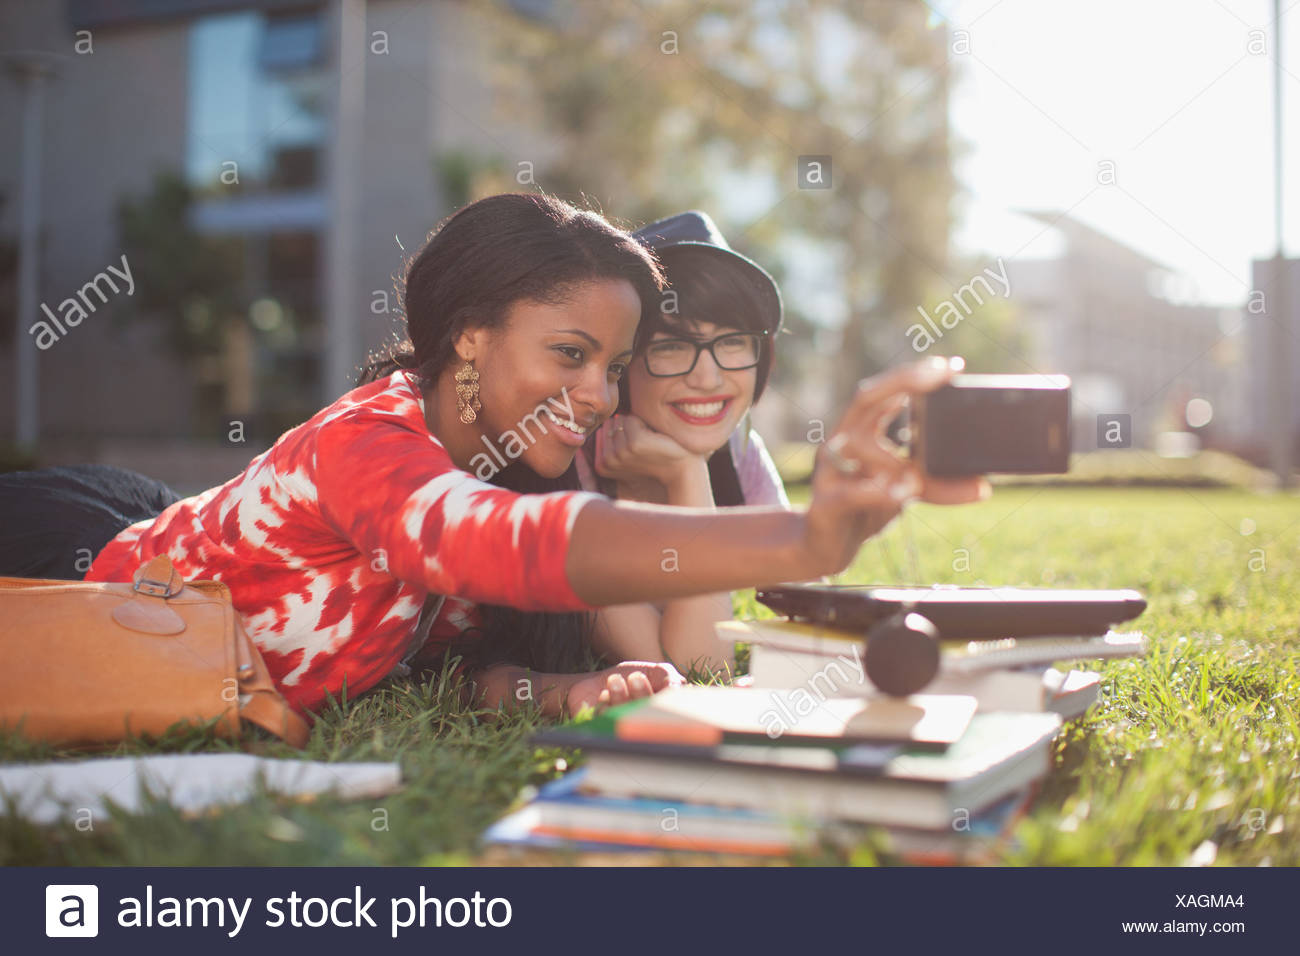 Two girls photographing themselves - Stock Image